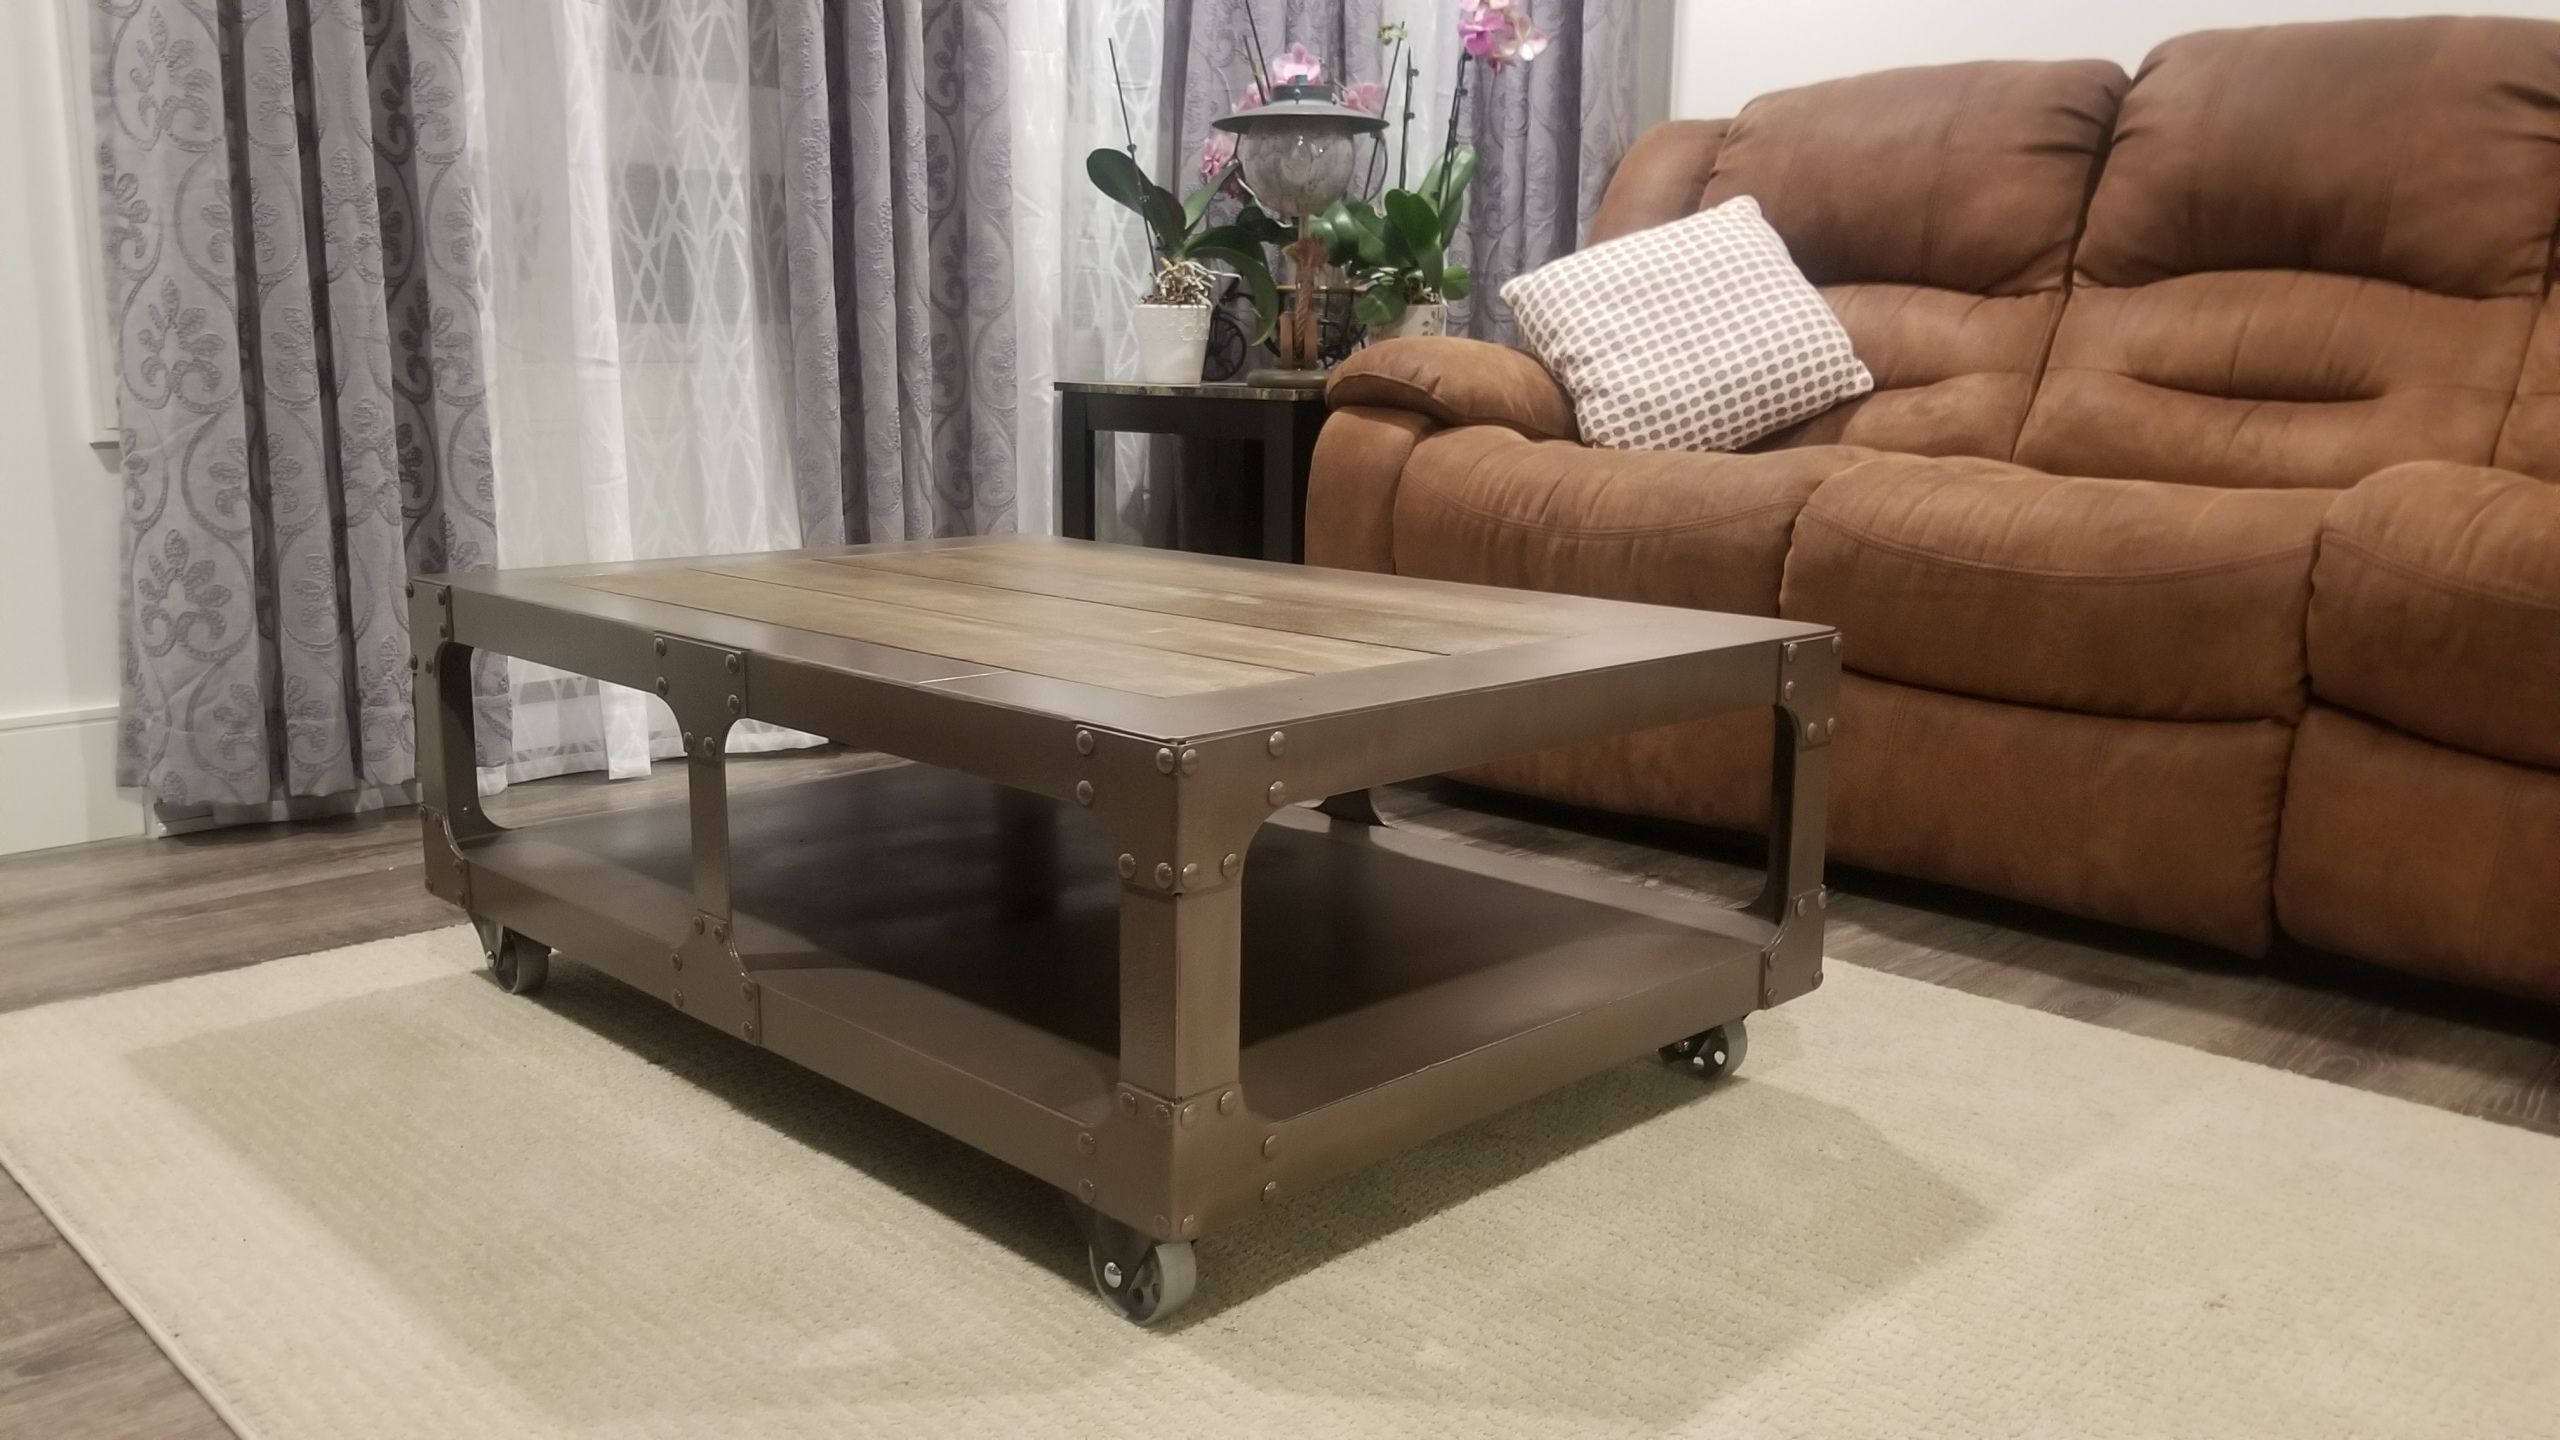 Coffee Table By Georges Leger From Gl Steelfab Halifax Nova Scotia Canada